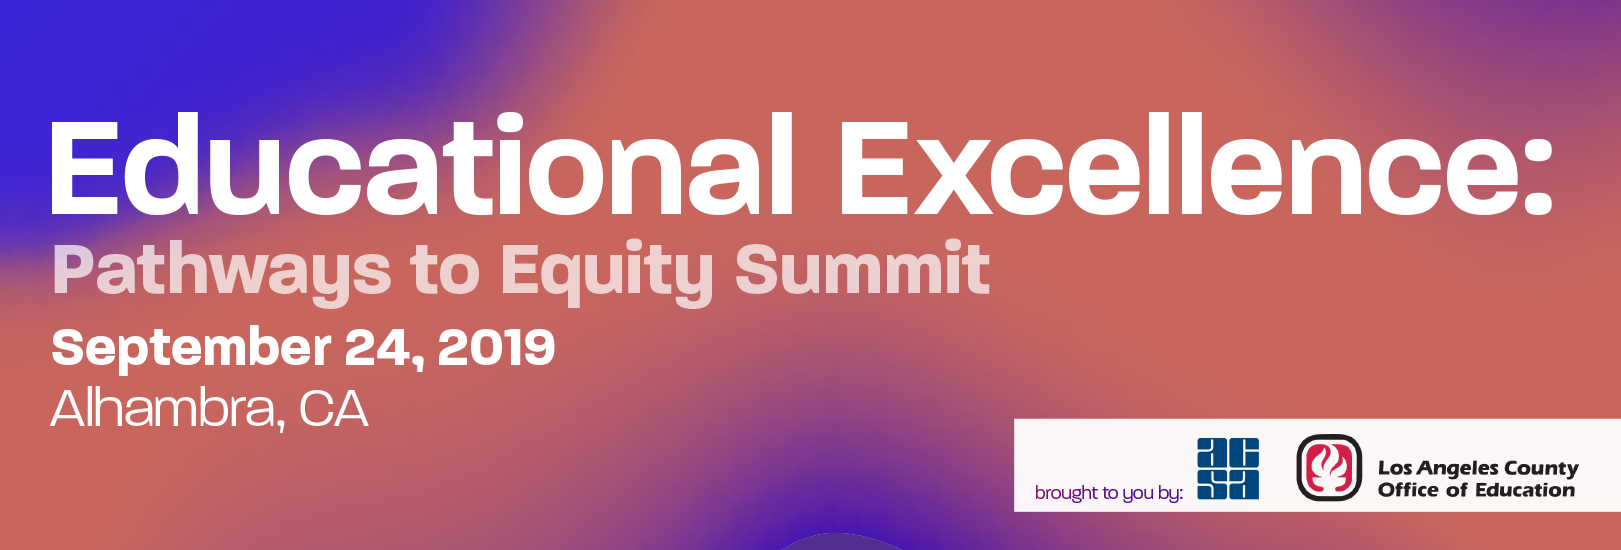 Educational Excellence, Pathways to Equity Summit in Alhambra on September 24, 2019.